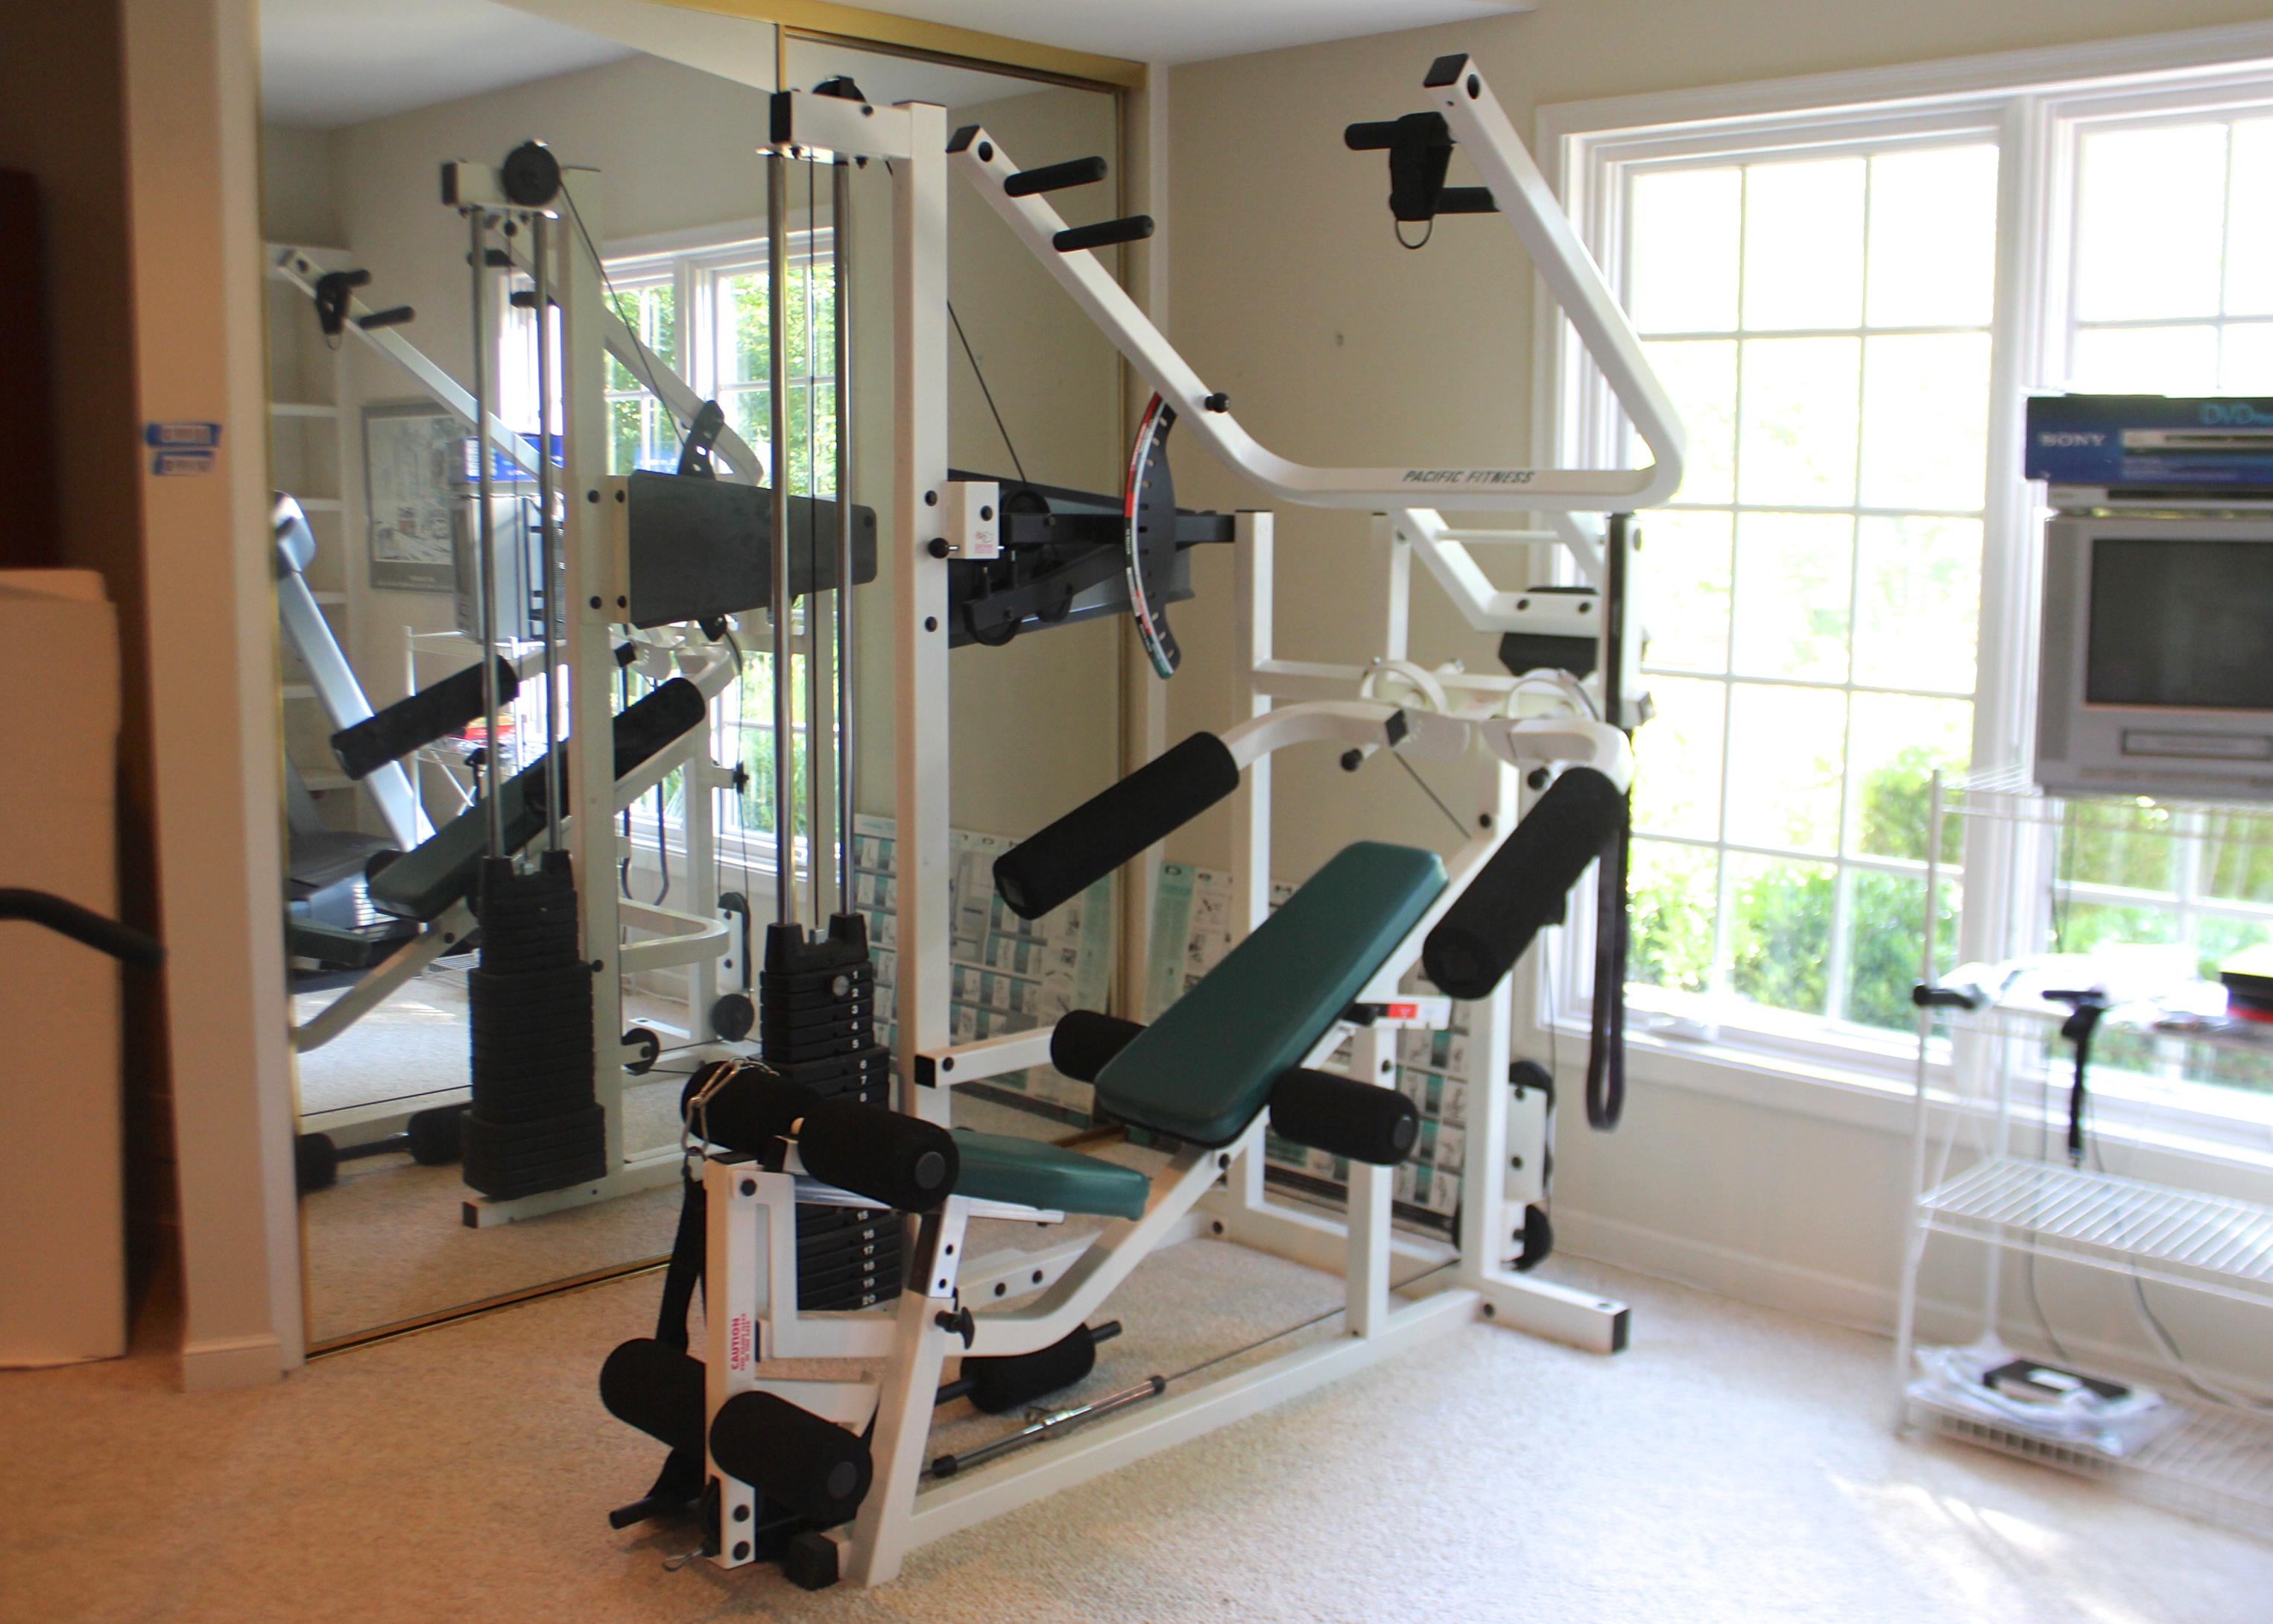 Pacific fitness del mar home gym ebth